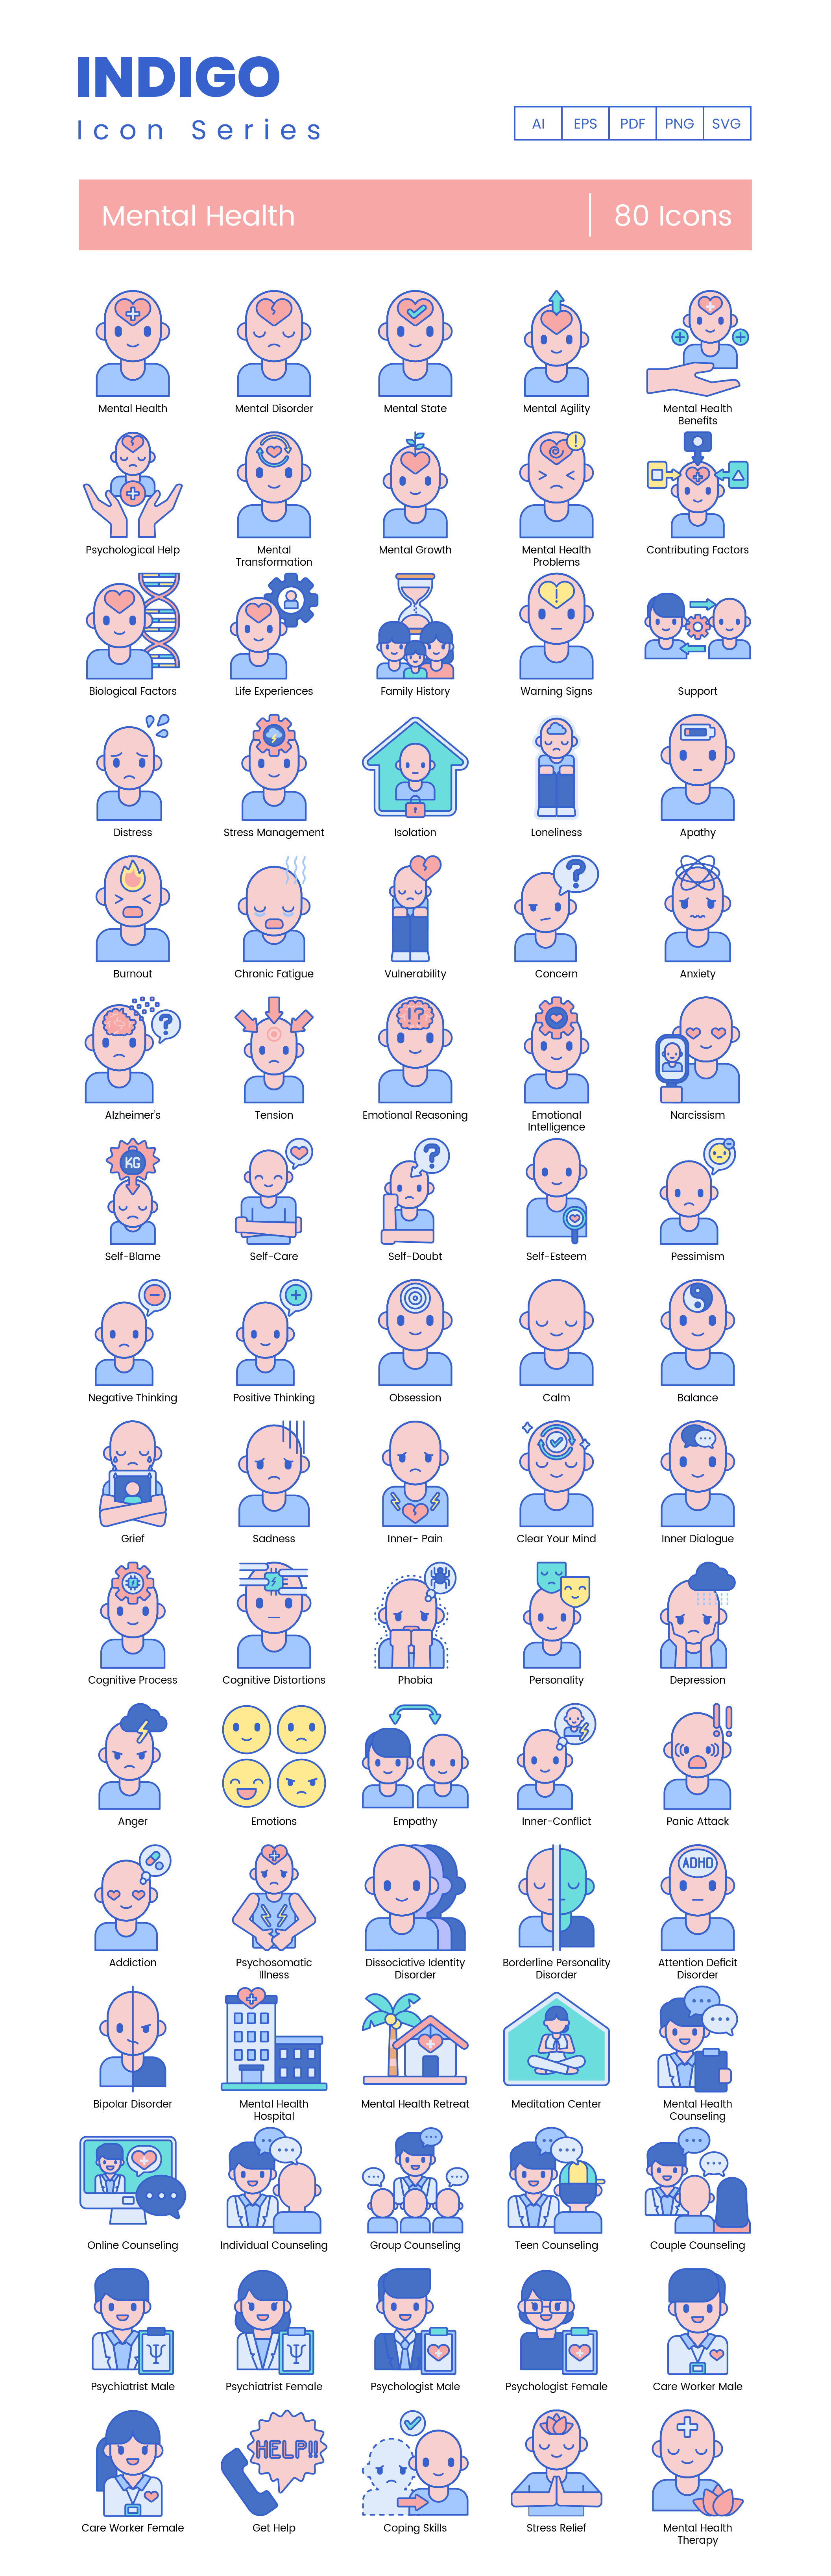 Mental Health Vector Icons Preview Image